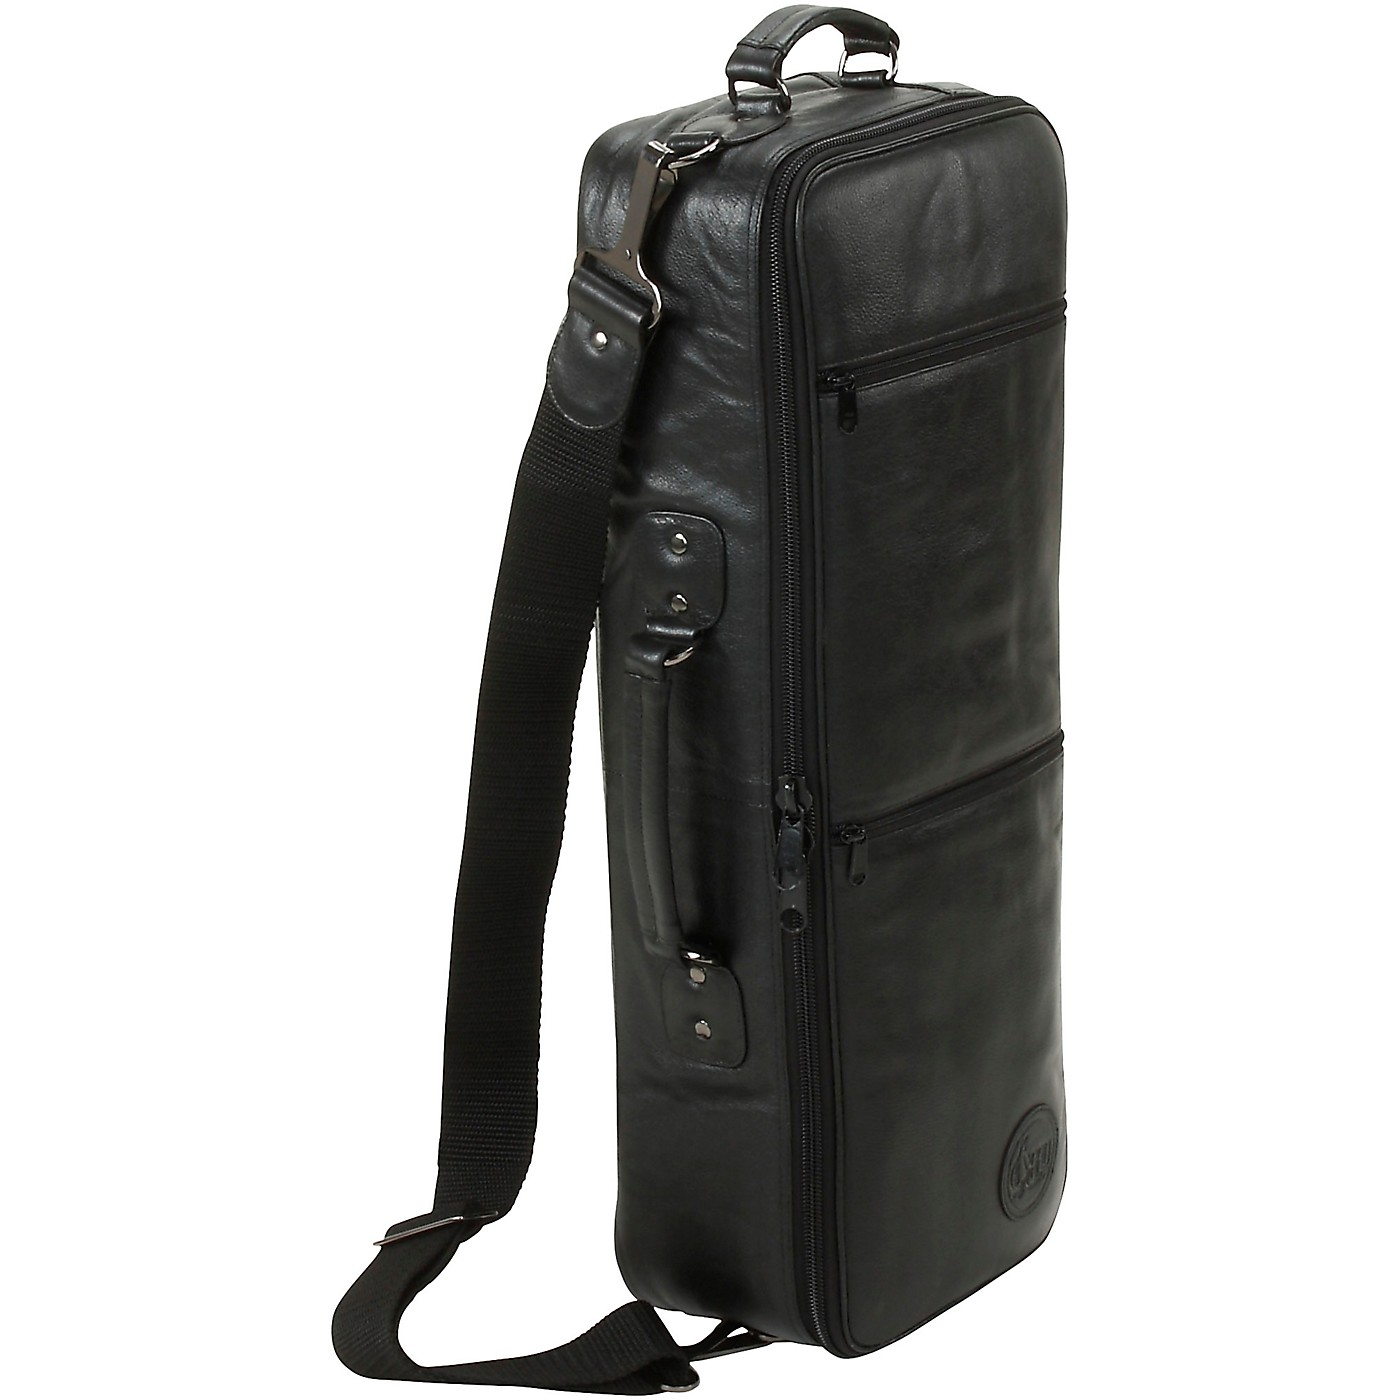 Gard Compact Curved Soprano with Removable Neck Gig Bag thumbnail